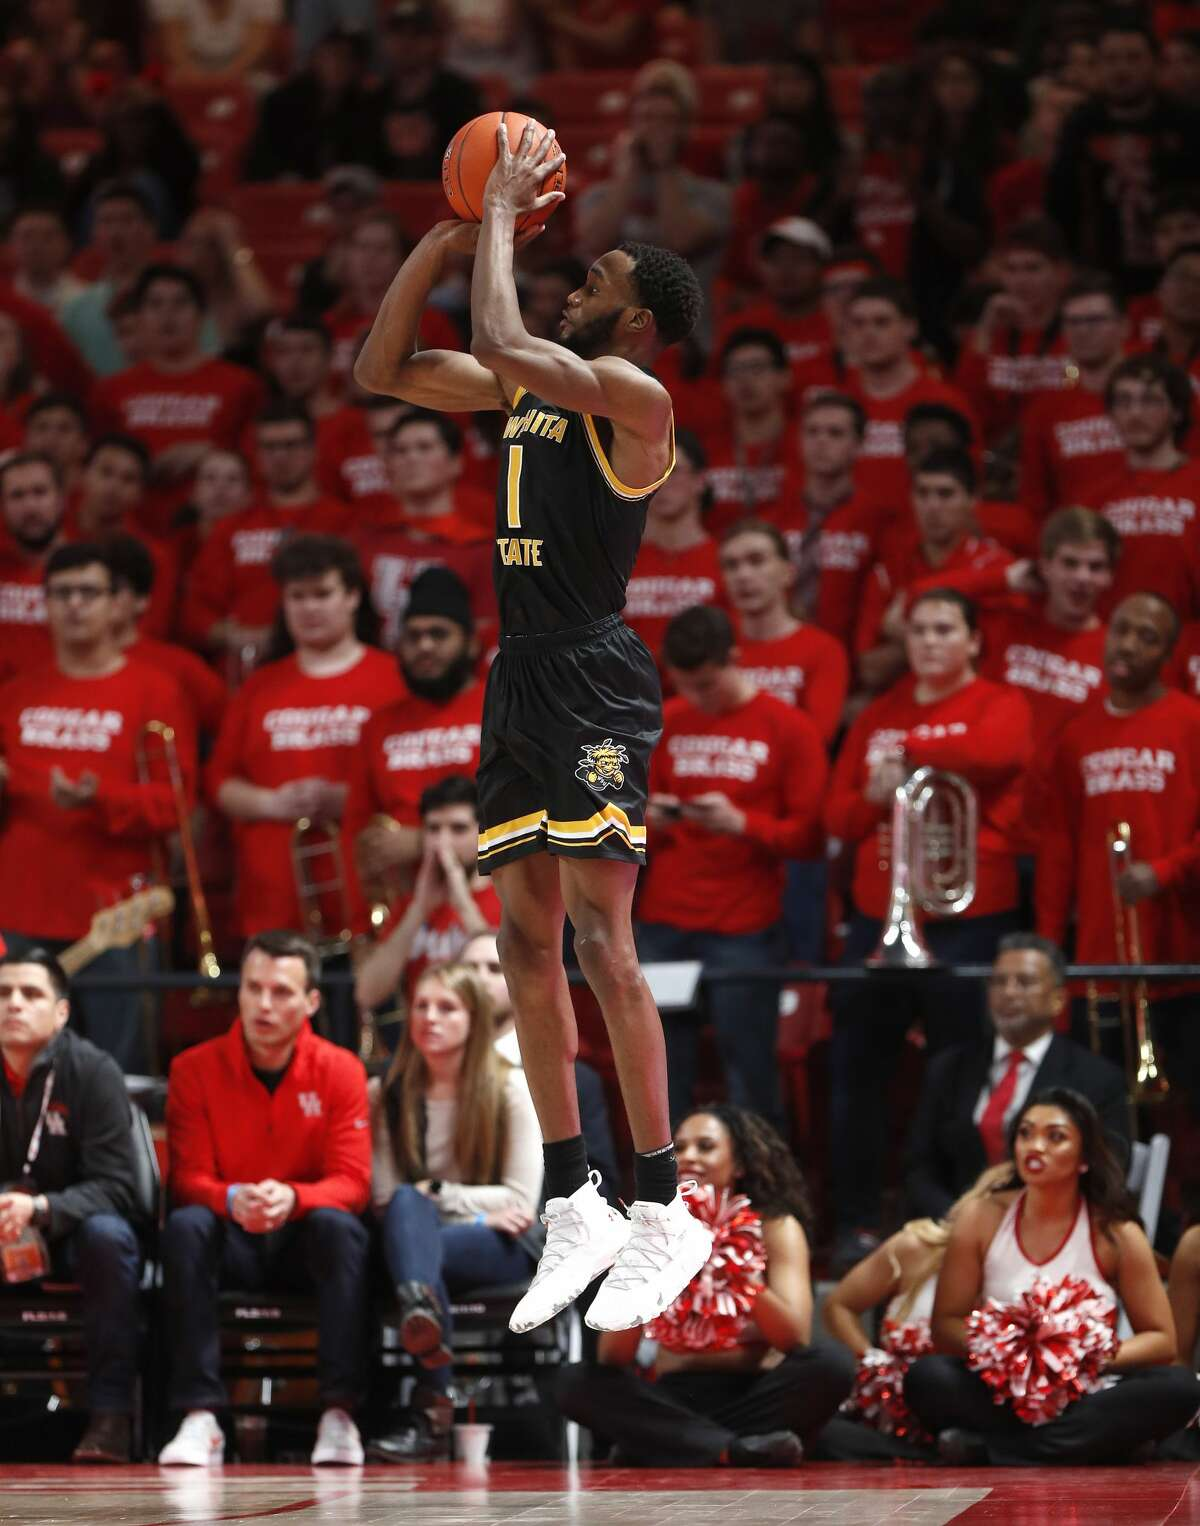 Wichita State Shockers forward Markis McDuffie (1) puts up a three-pointer during the second half of an NCAA Men's basketball game at Fertitta Center, Saturday, Jan. 12, 2019, in Houston. Houston won the game against Wichita State Shockers 79-70.